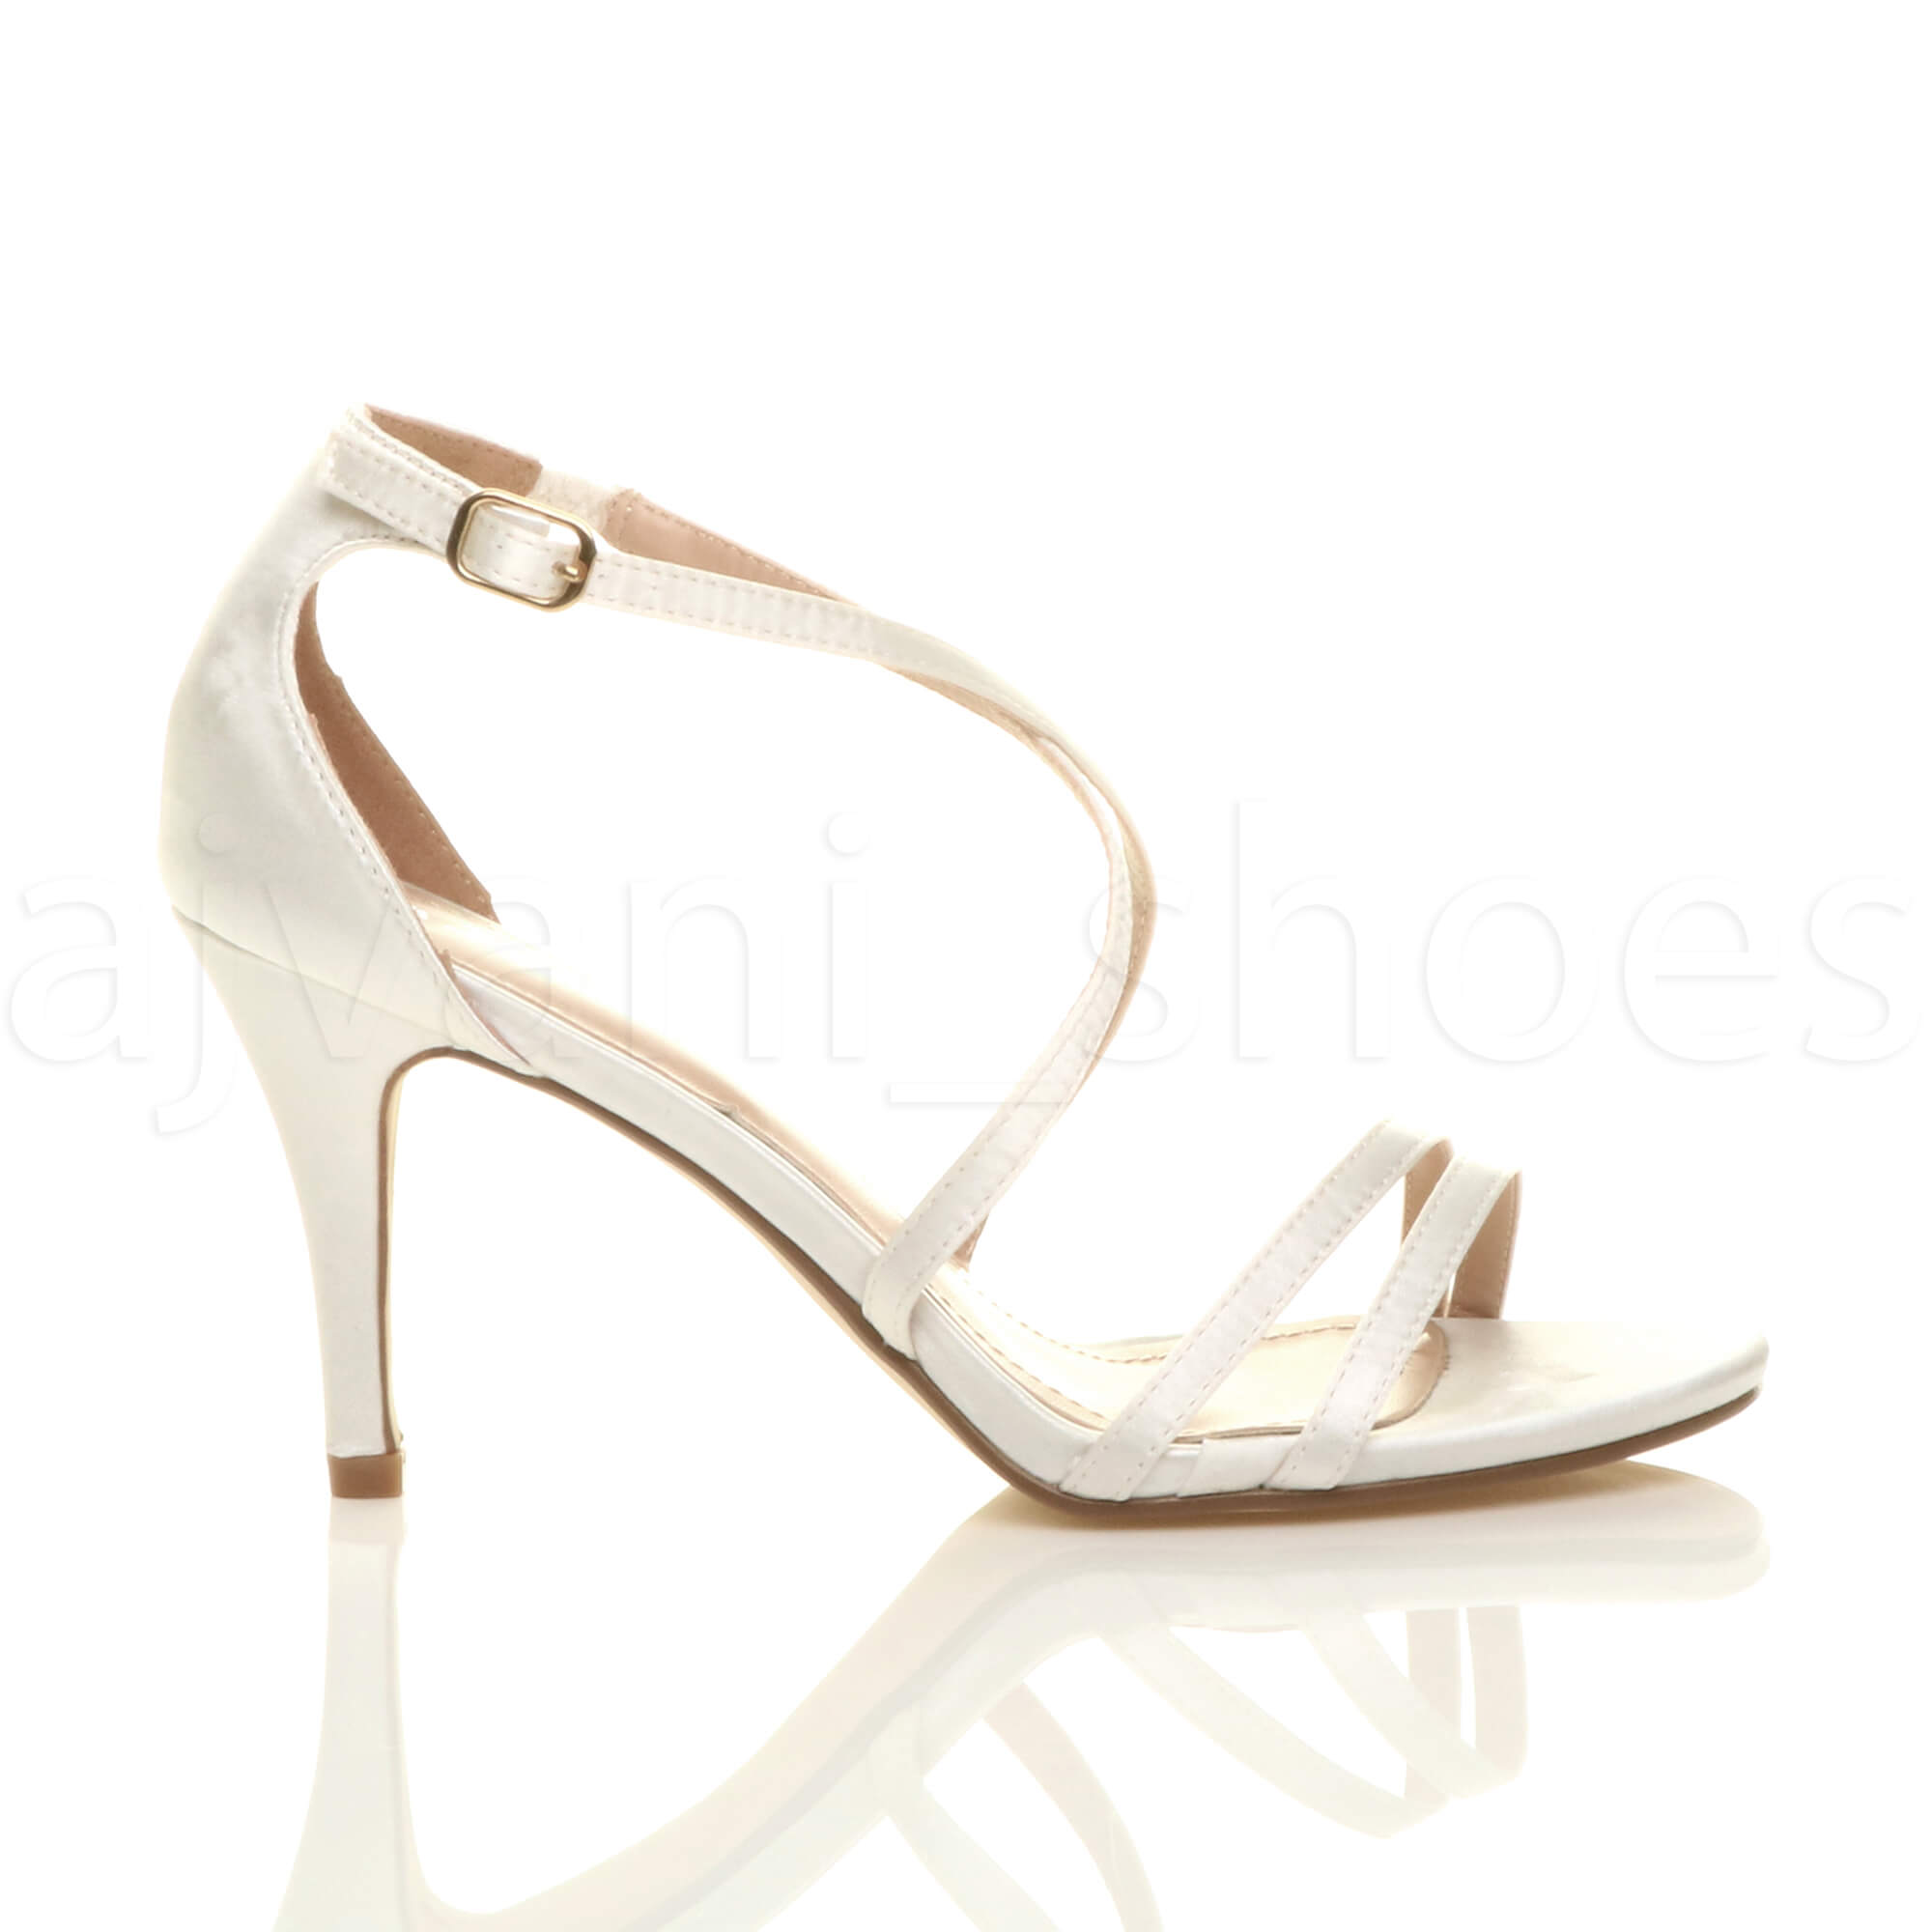 WOMENS-LADIES-MID-HIGH-HEEL-STRAPPY-CROSSOVER-WEDDING-PROM-SANDALS-SHOES-SIZE thumbnail 66